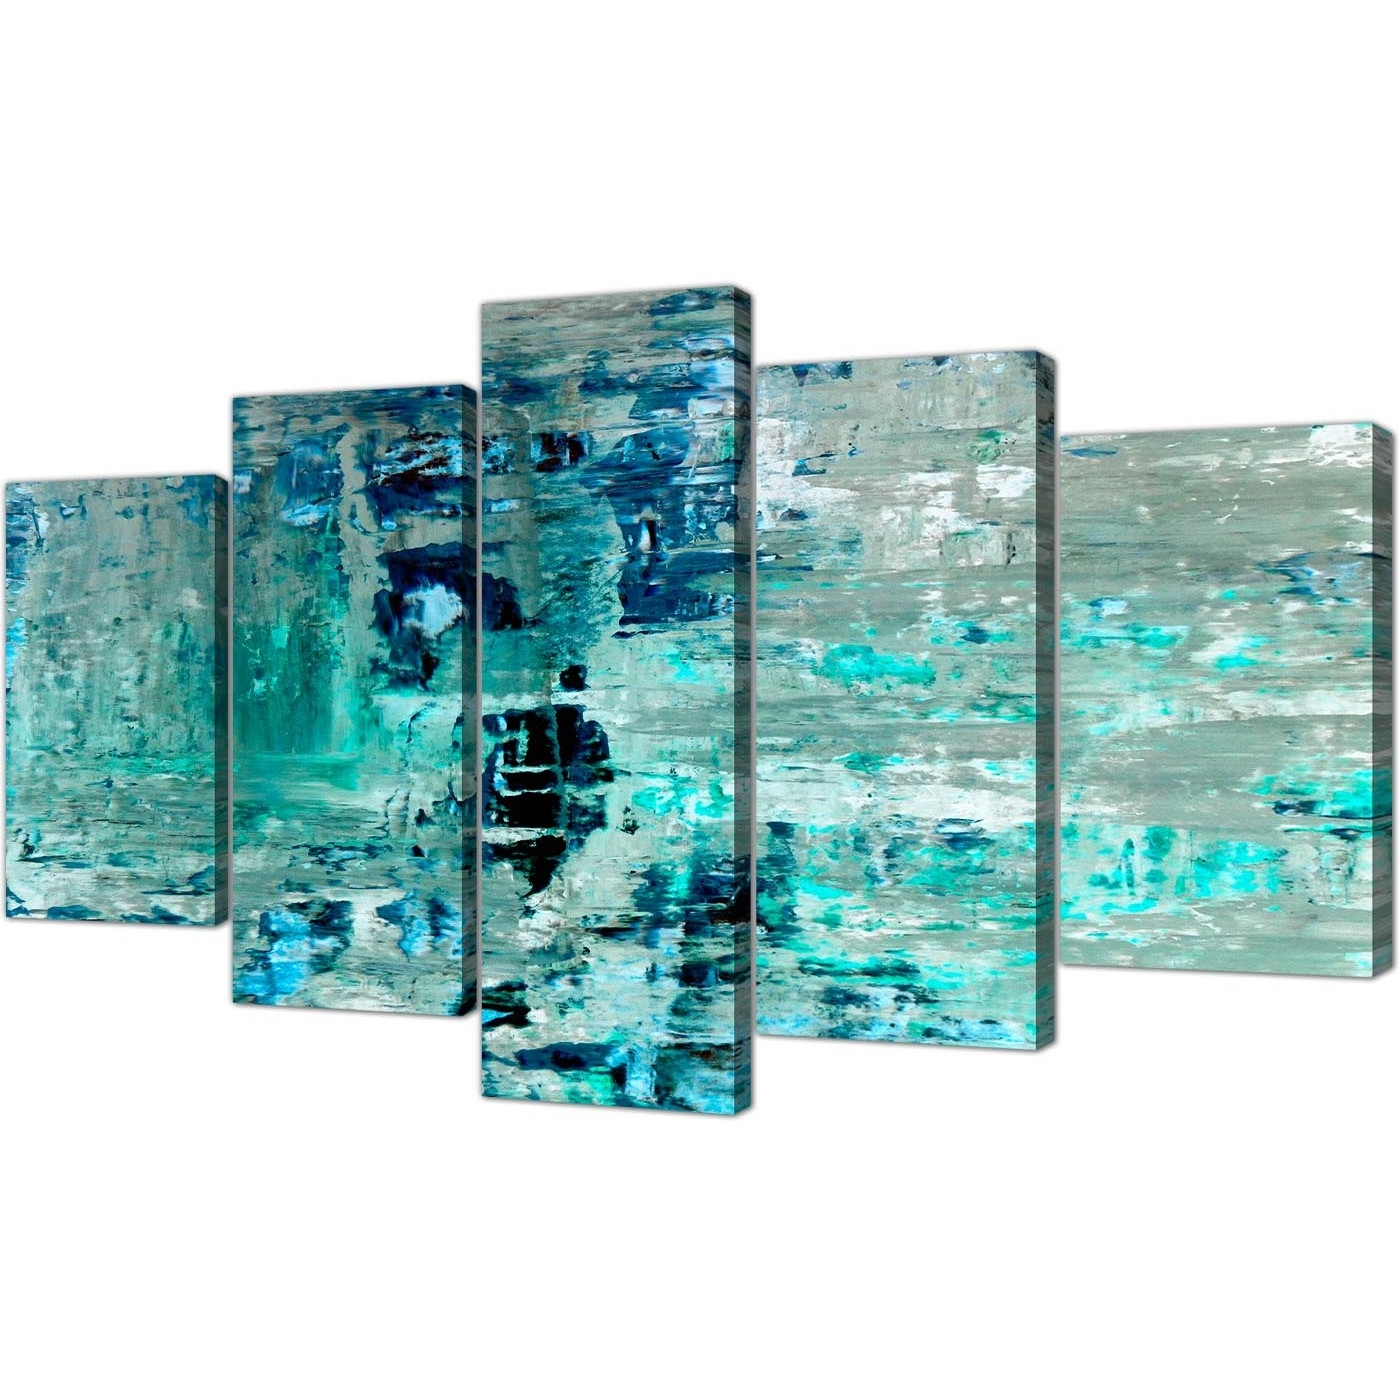 Well Known Extra Large Turquoise Teal Abstract Painting Wall Art Print Canvas Within Large Canvas Painting Wall Art (View 19 of 20)